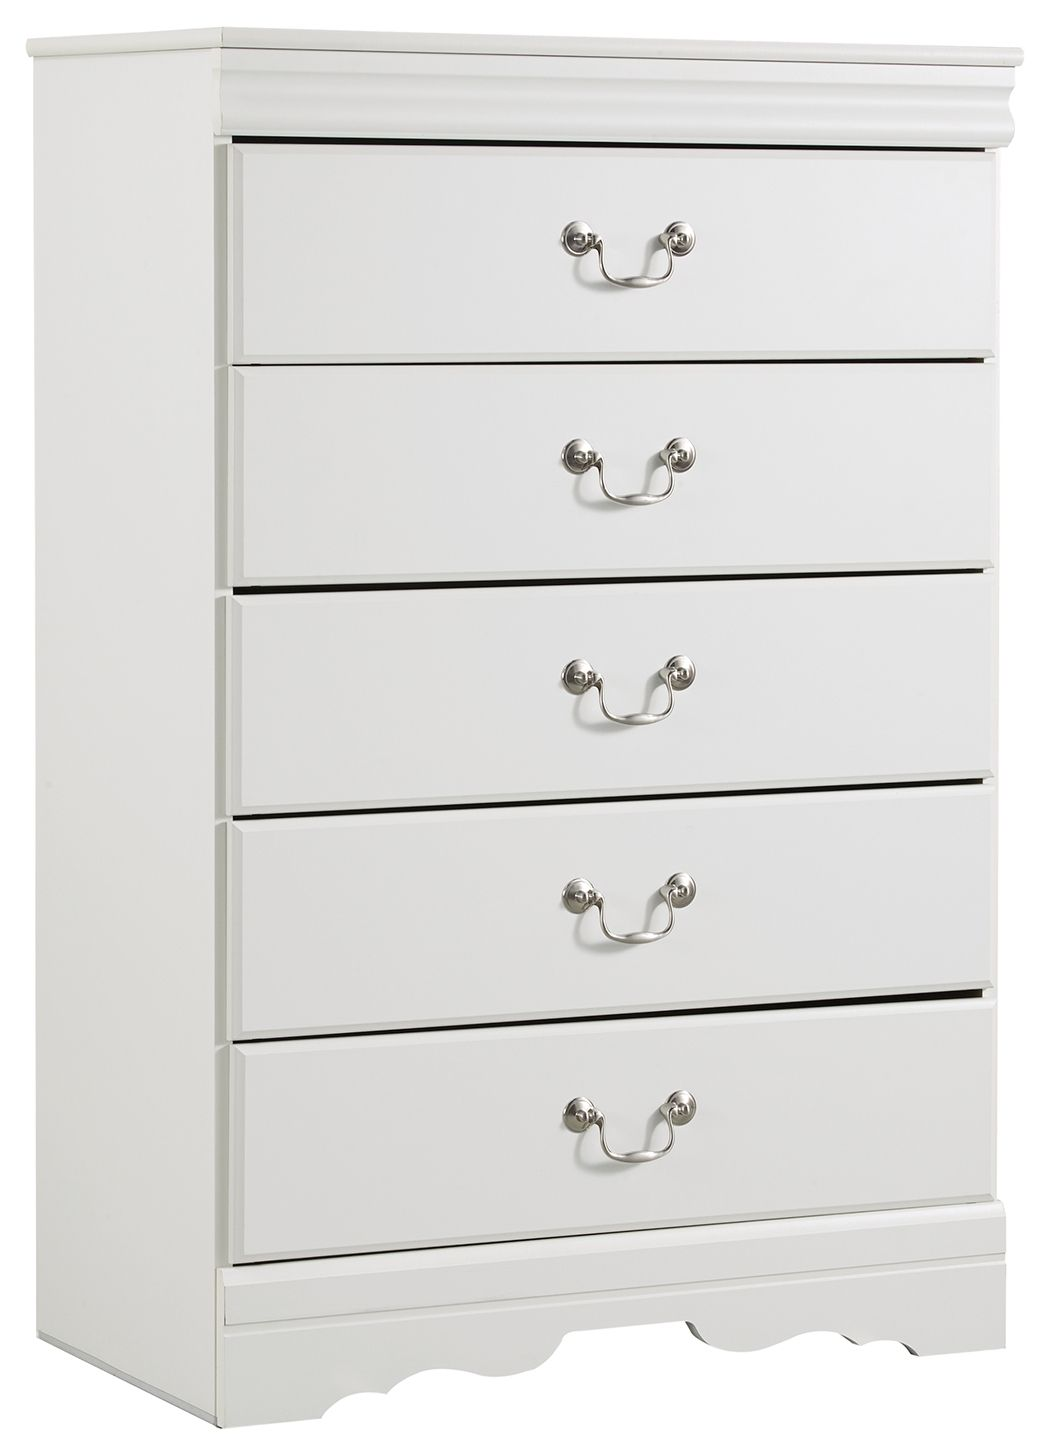 Anarasia Chest of Drawers | Calgary's Furniture Store